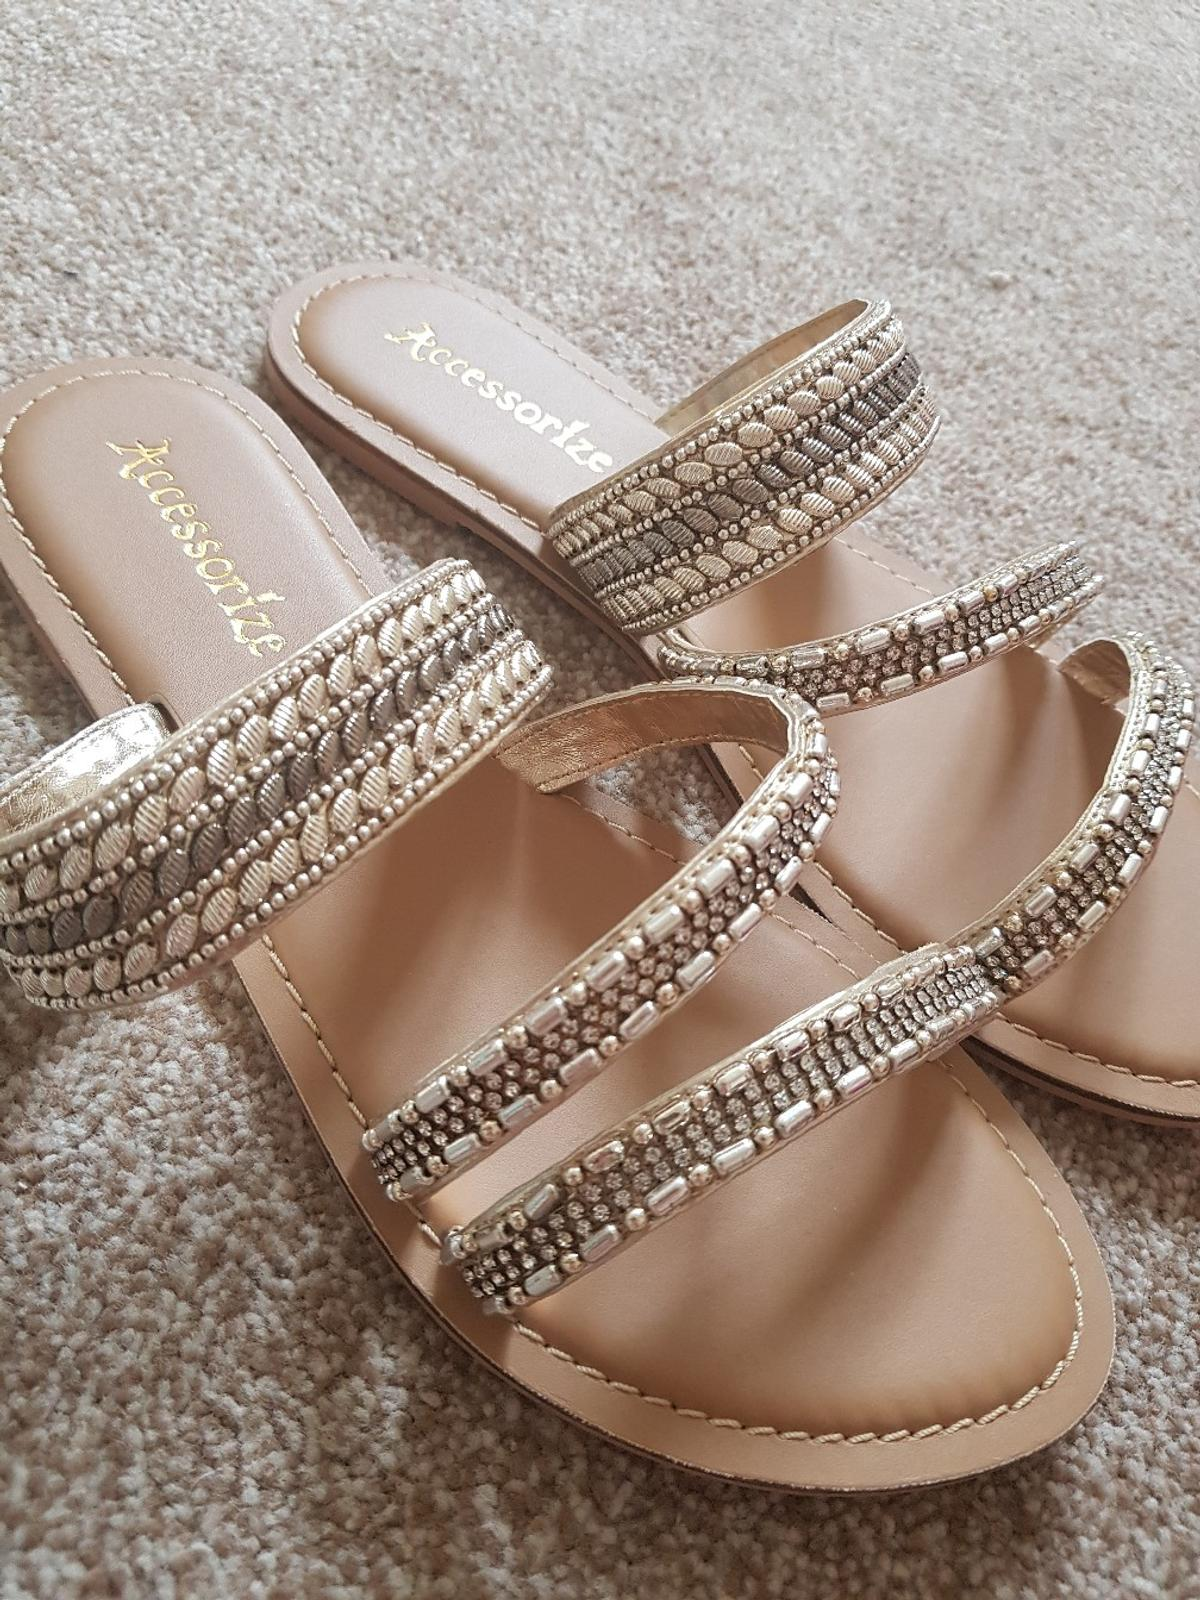 Accessorize Bd14 00 6 In Gold Bradford For Brand New £12 Sandals 9IeEH2WYbD